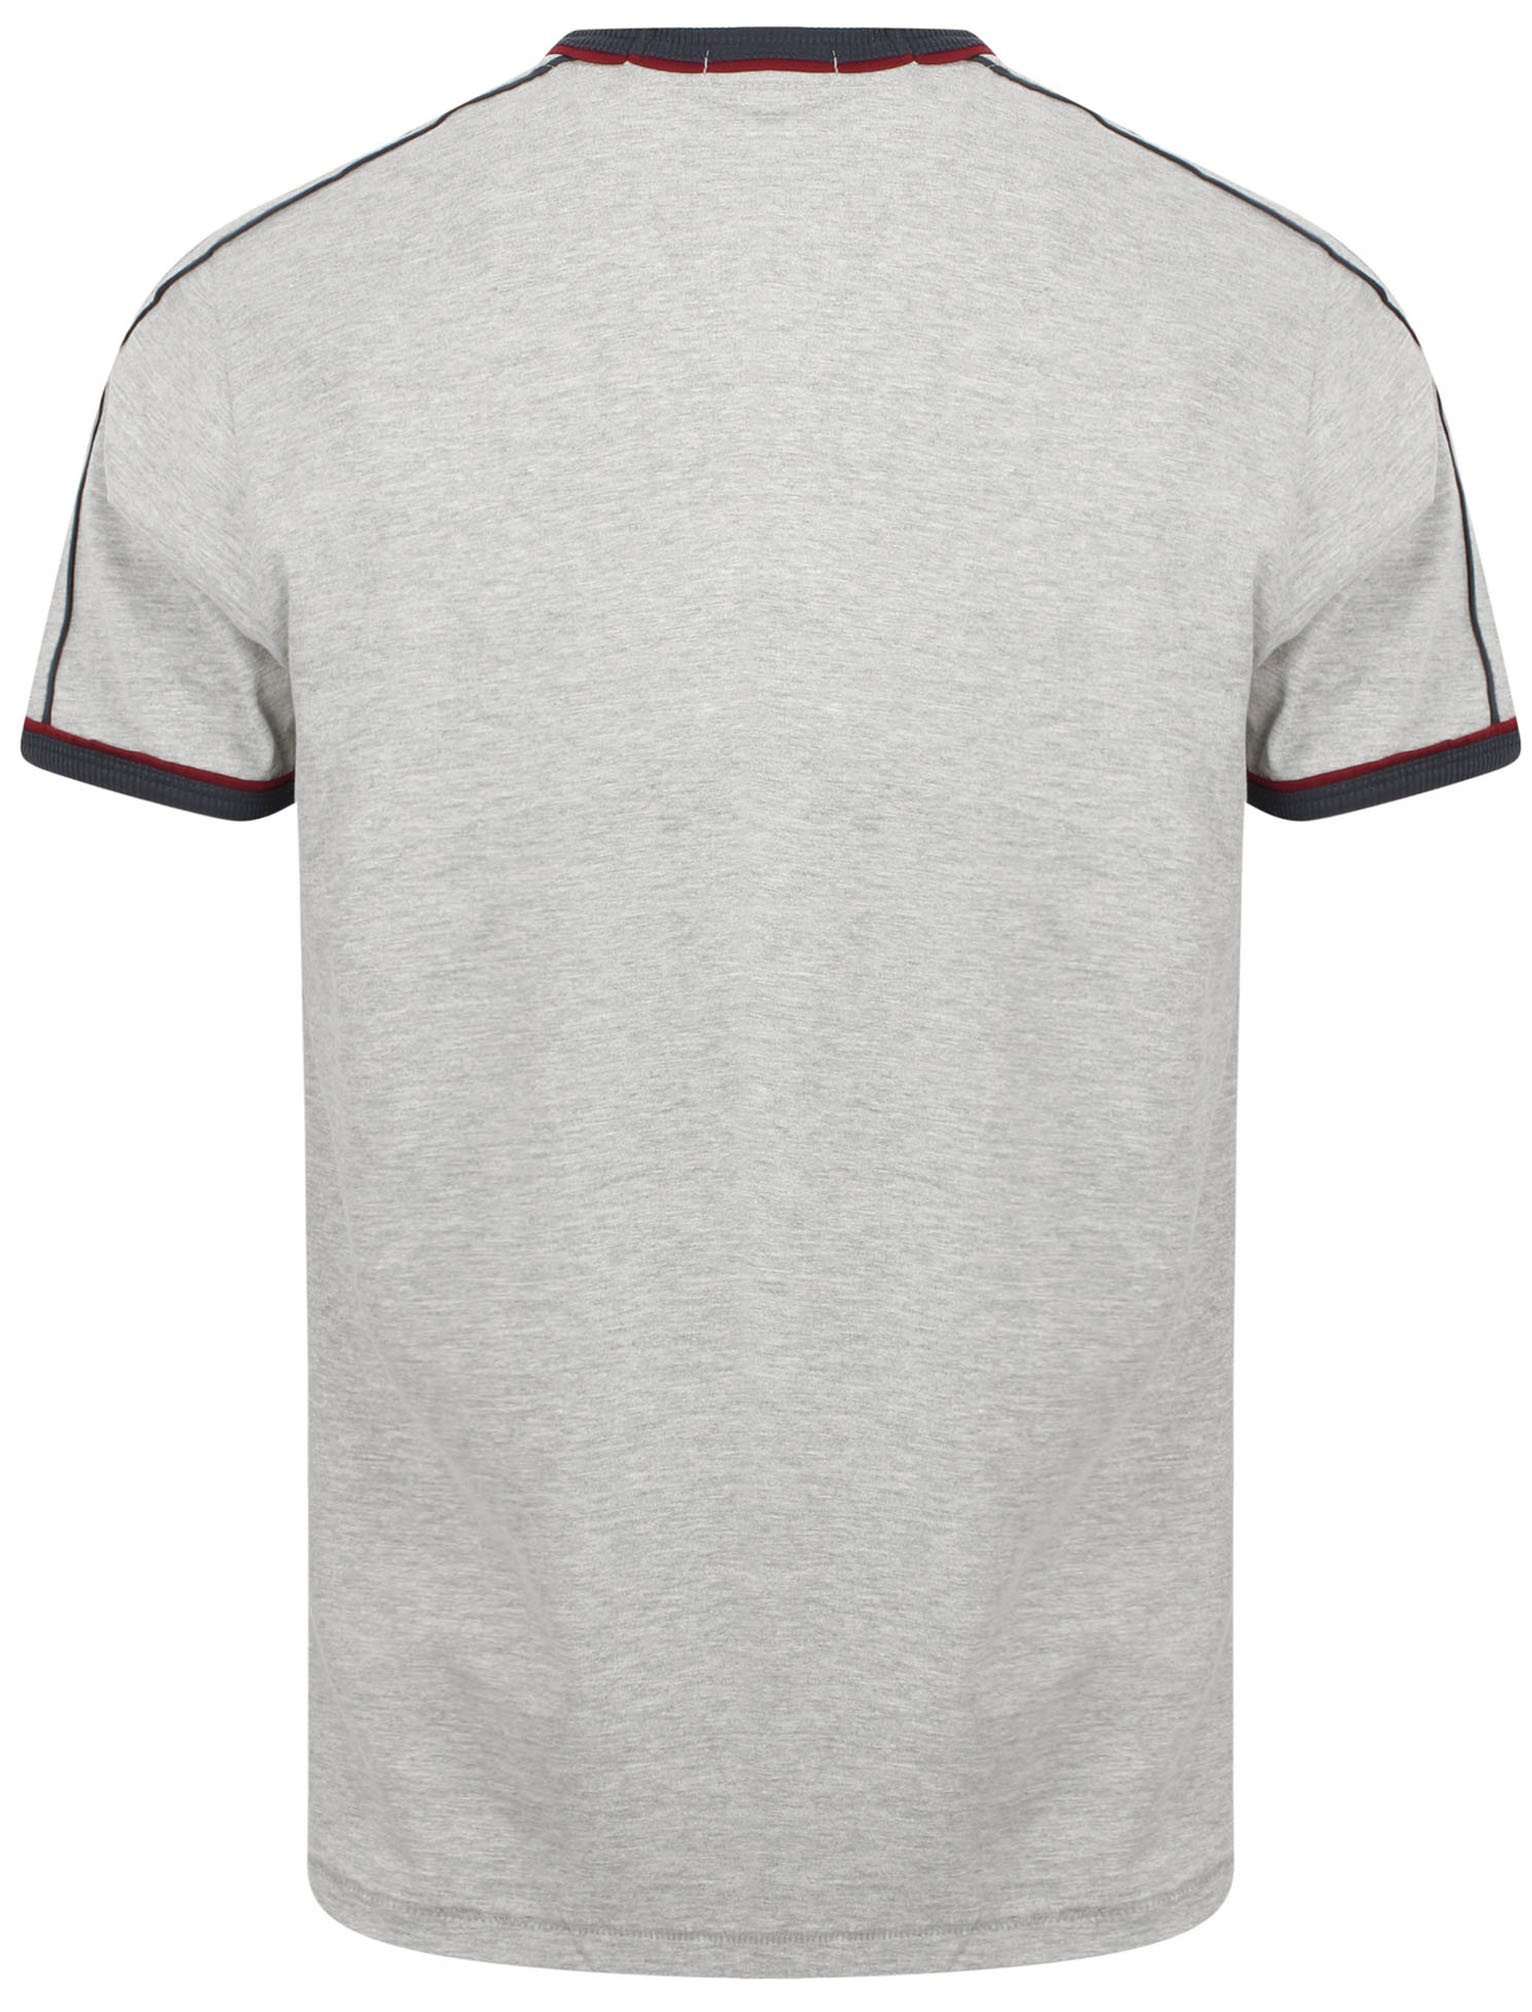 New-Men-039-s-Tokyo-Laundry-Fernfield-Cotton-Rich-Short-sleeves-T-shirt-Size-S-XL thumbnail 3